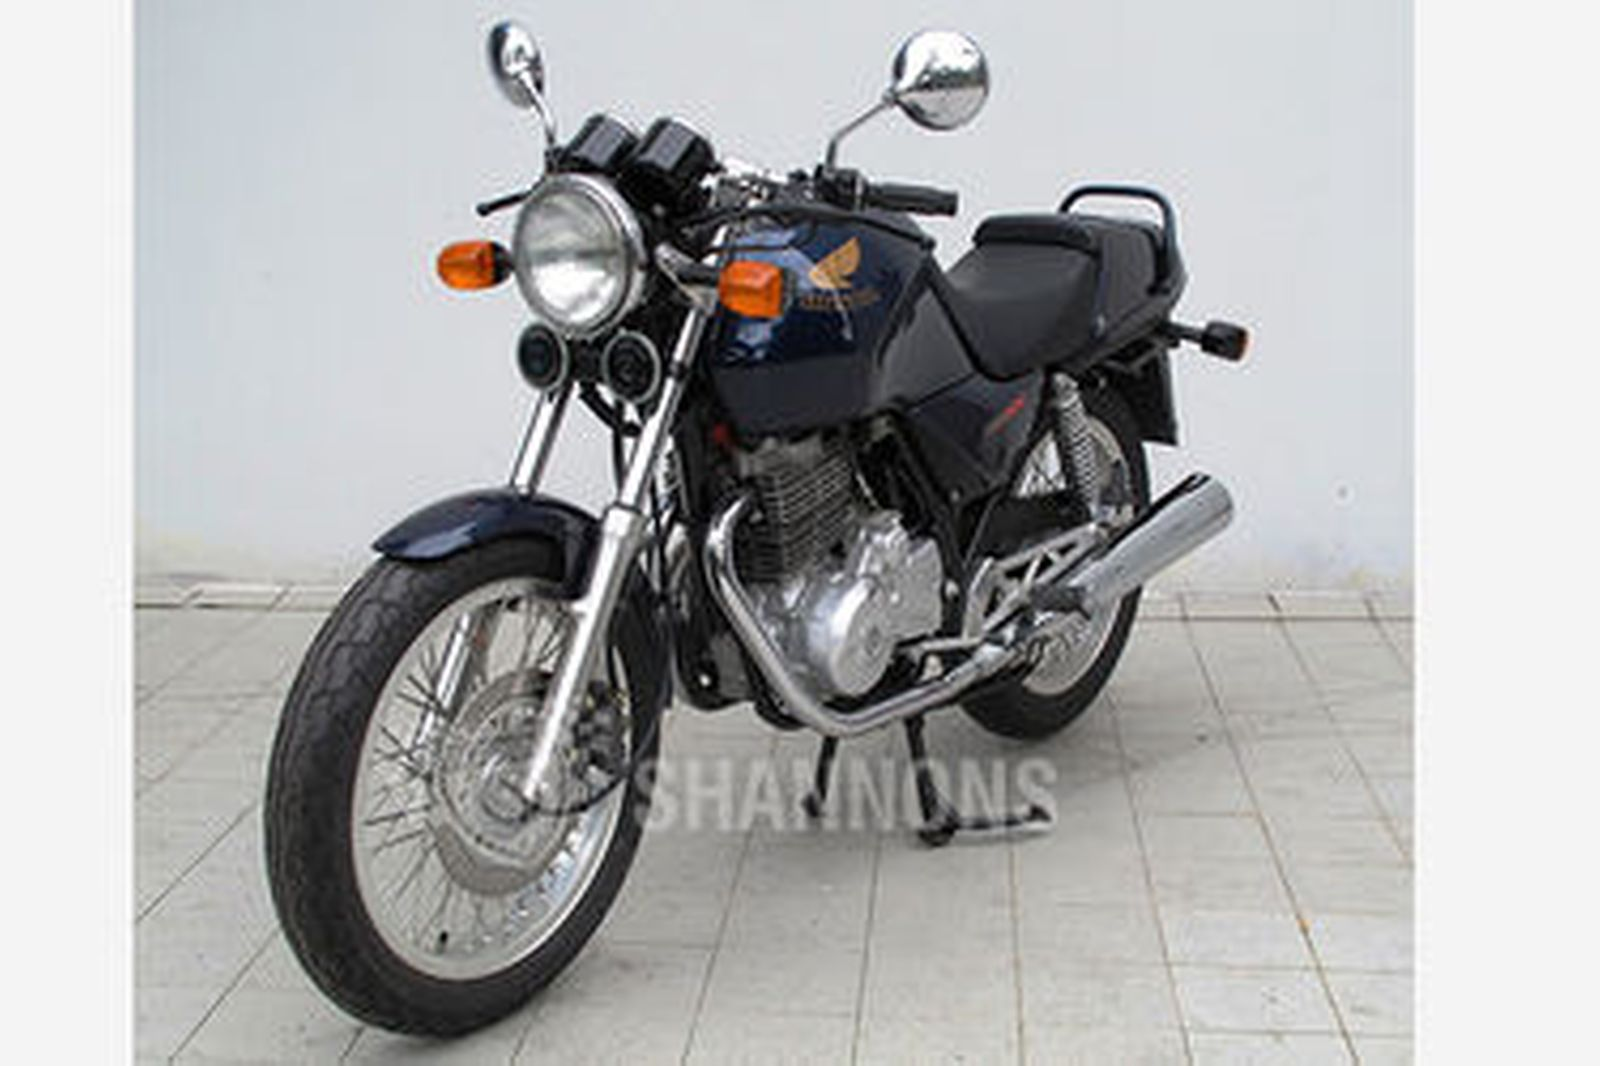 Sold: Honda XBR 500 Motorcycle Auctions - Lot AF - Shannons